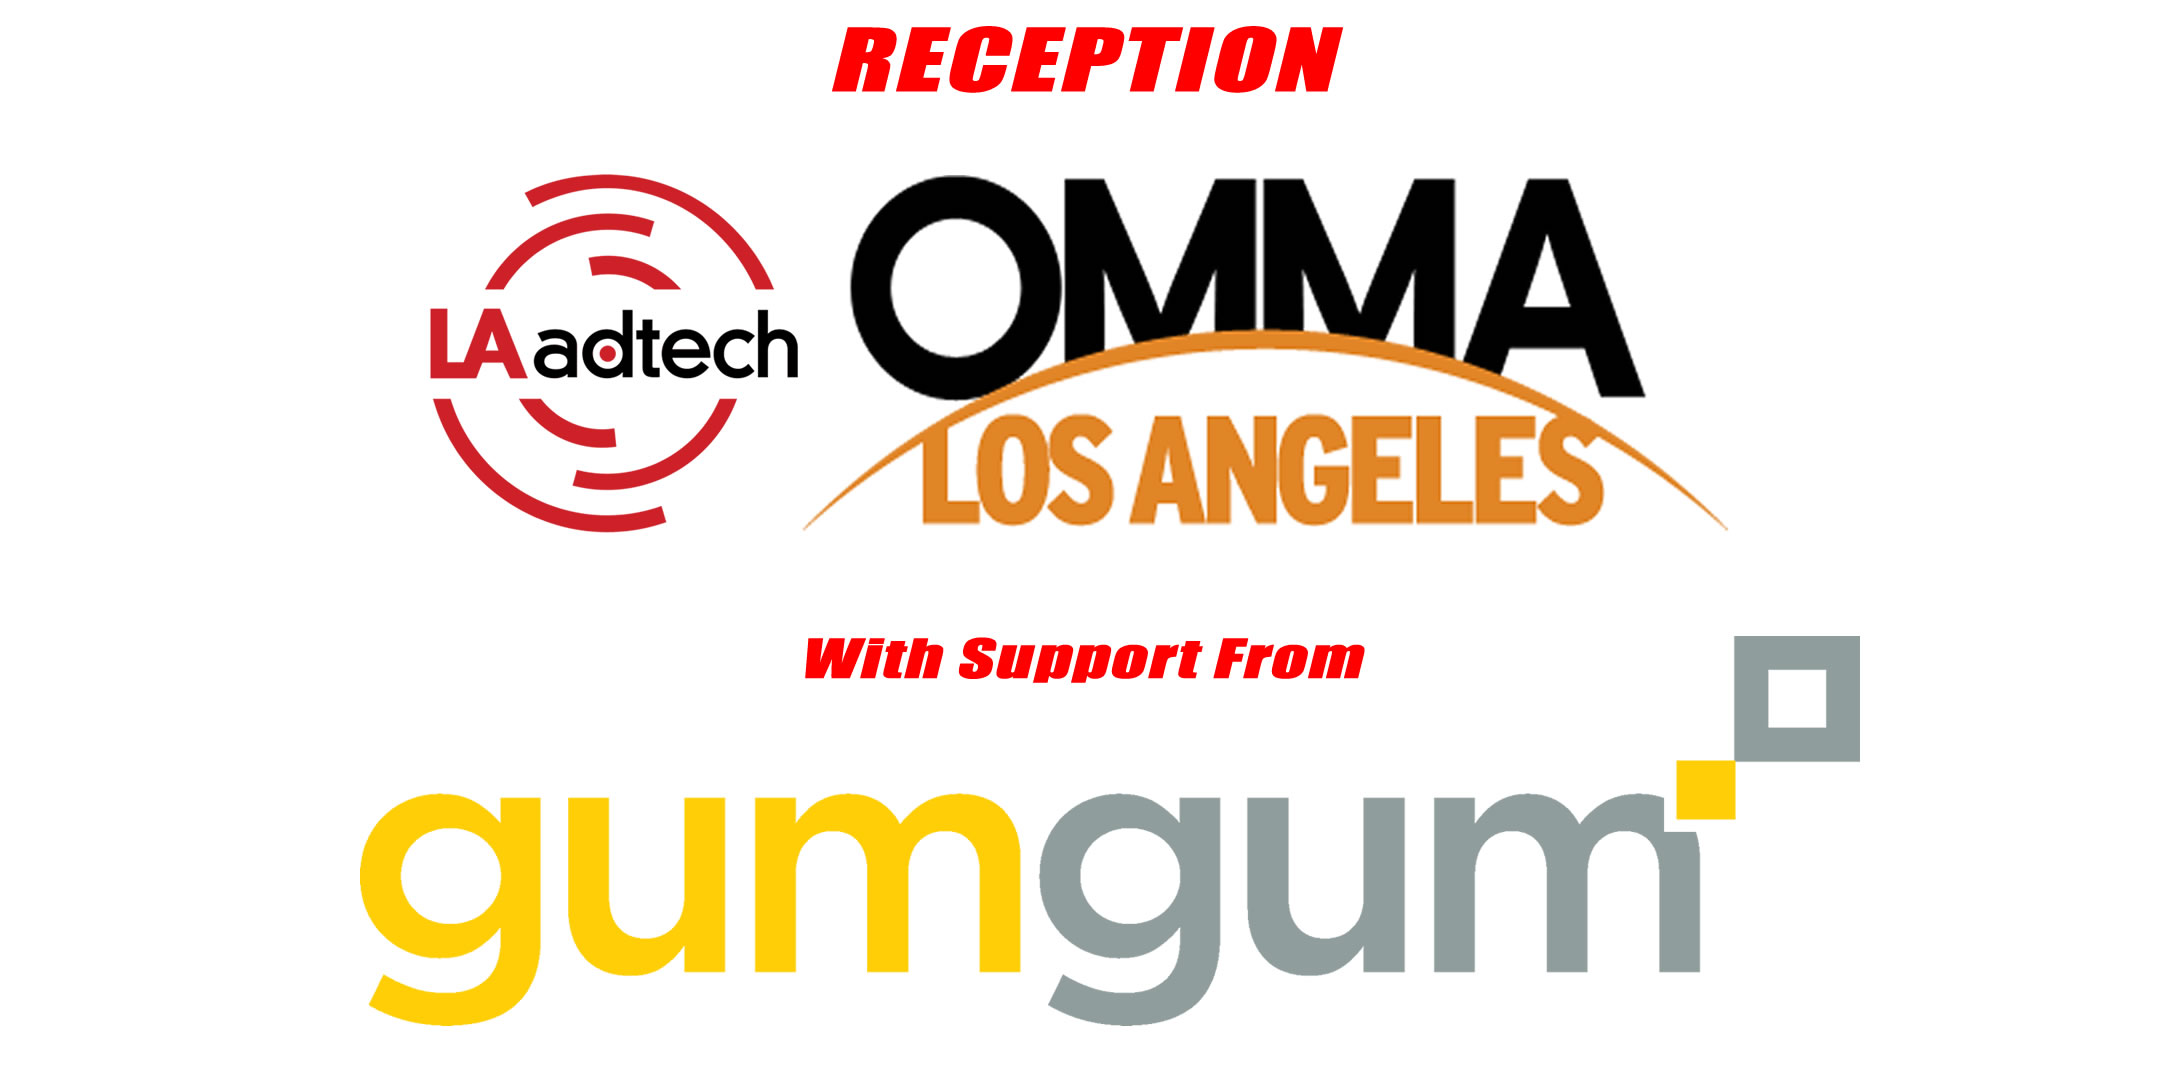 GumGum supports OMMA LA / LA AdTech reception